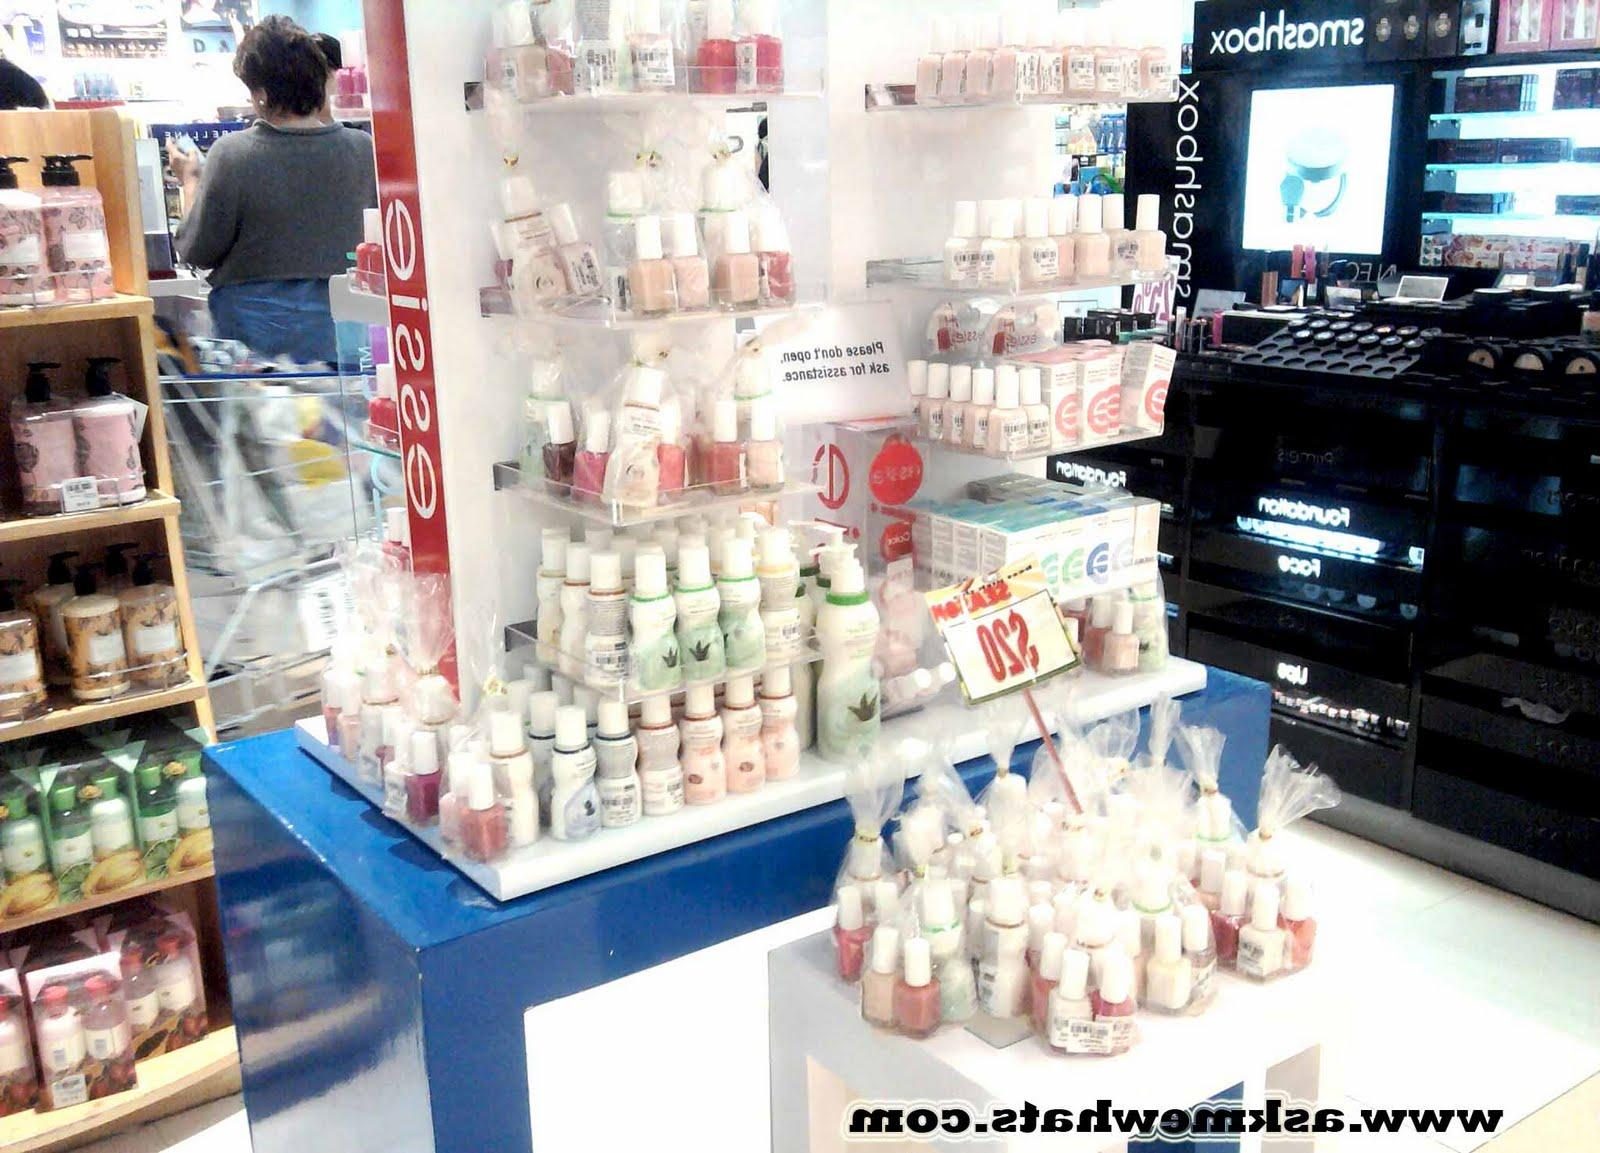 Ohhh look at Smashbox Counter,